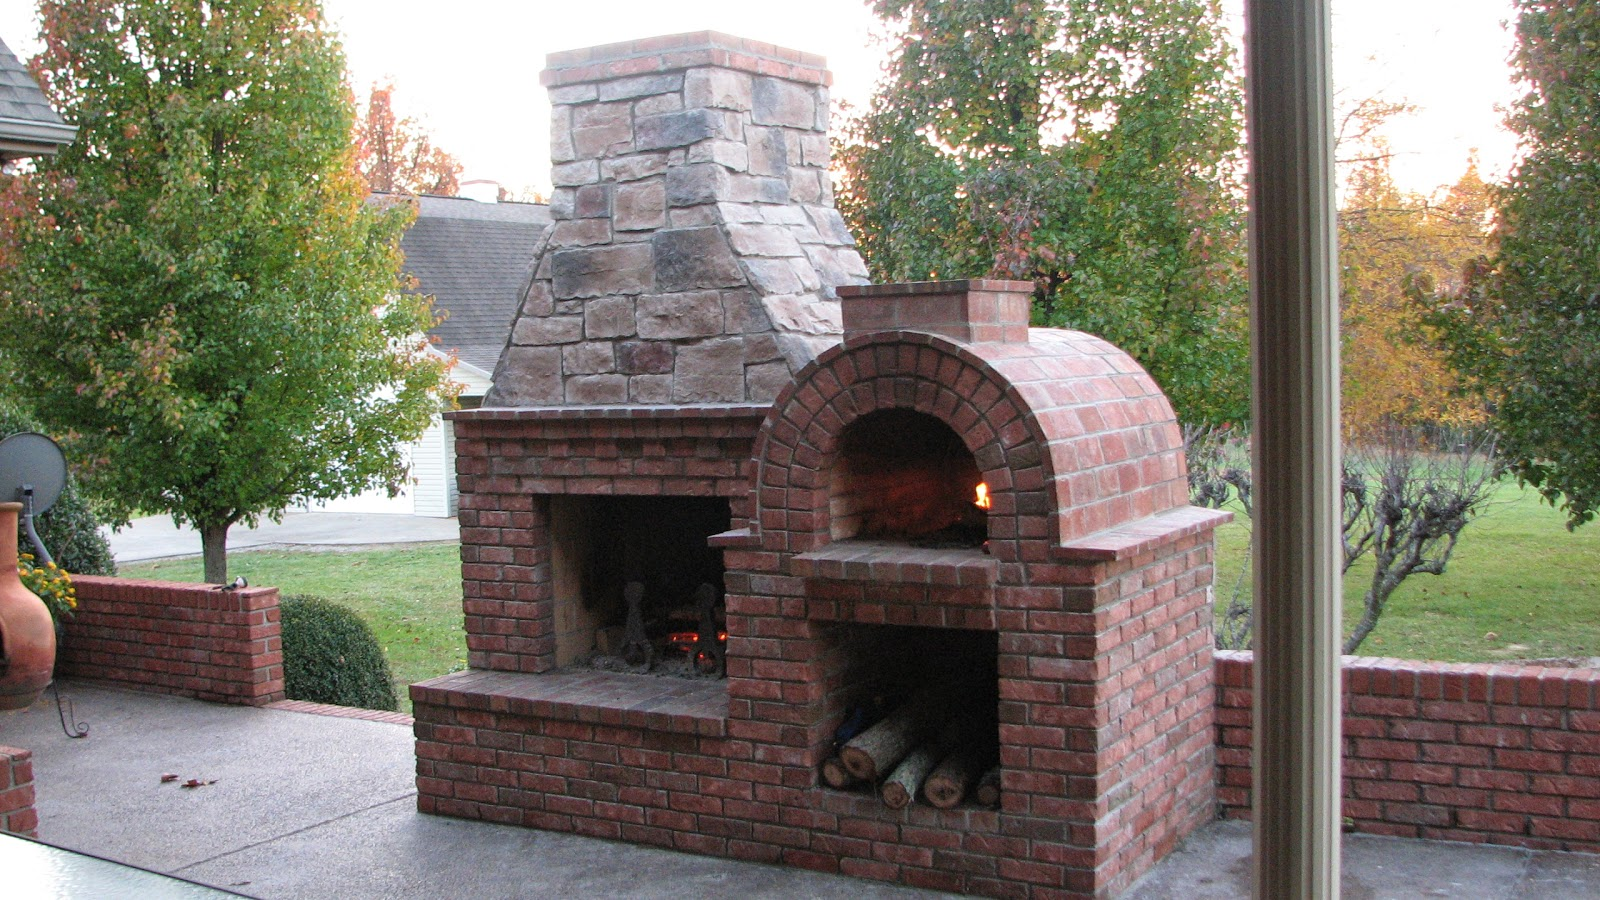 brickwood ovens riley wood fired brick pizza oven and